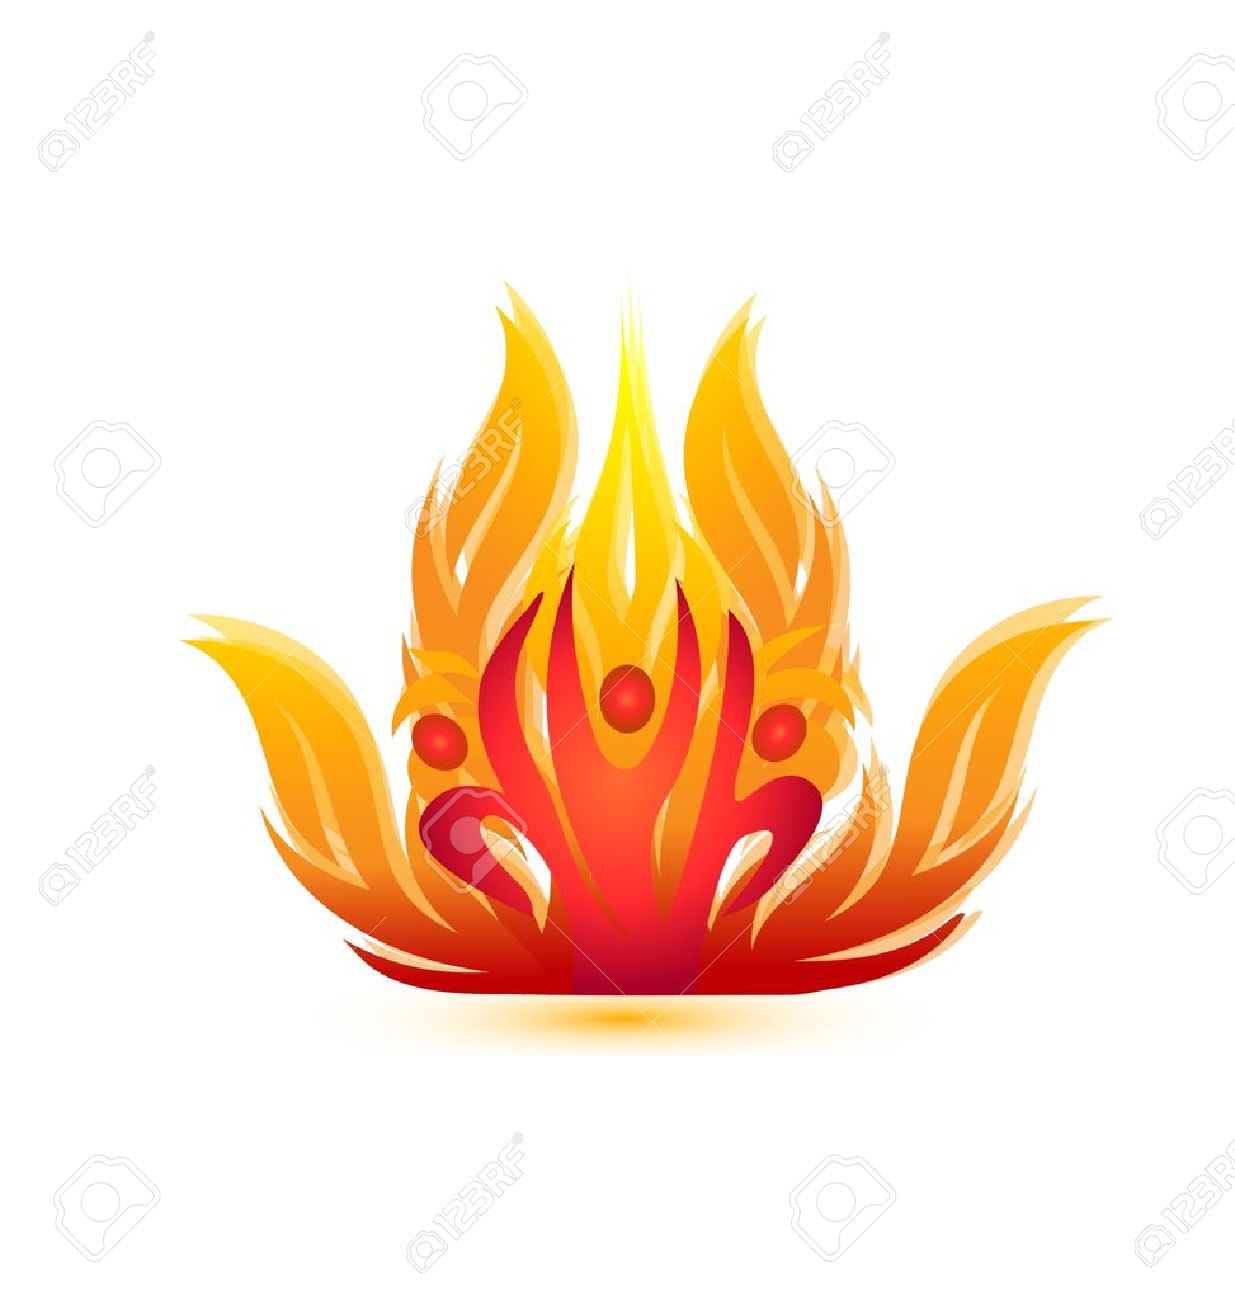 People on fire icon-rescue team firemen symbol Stock Vector - 21454530